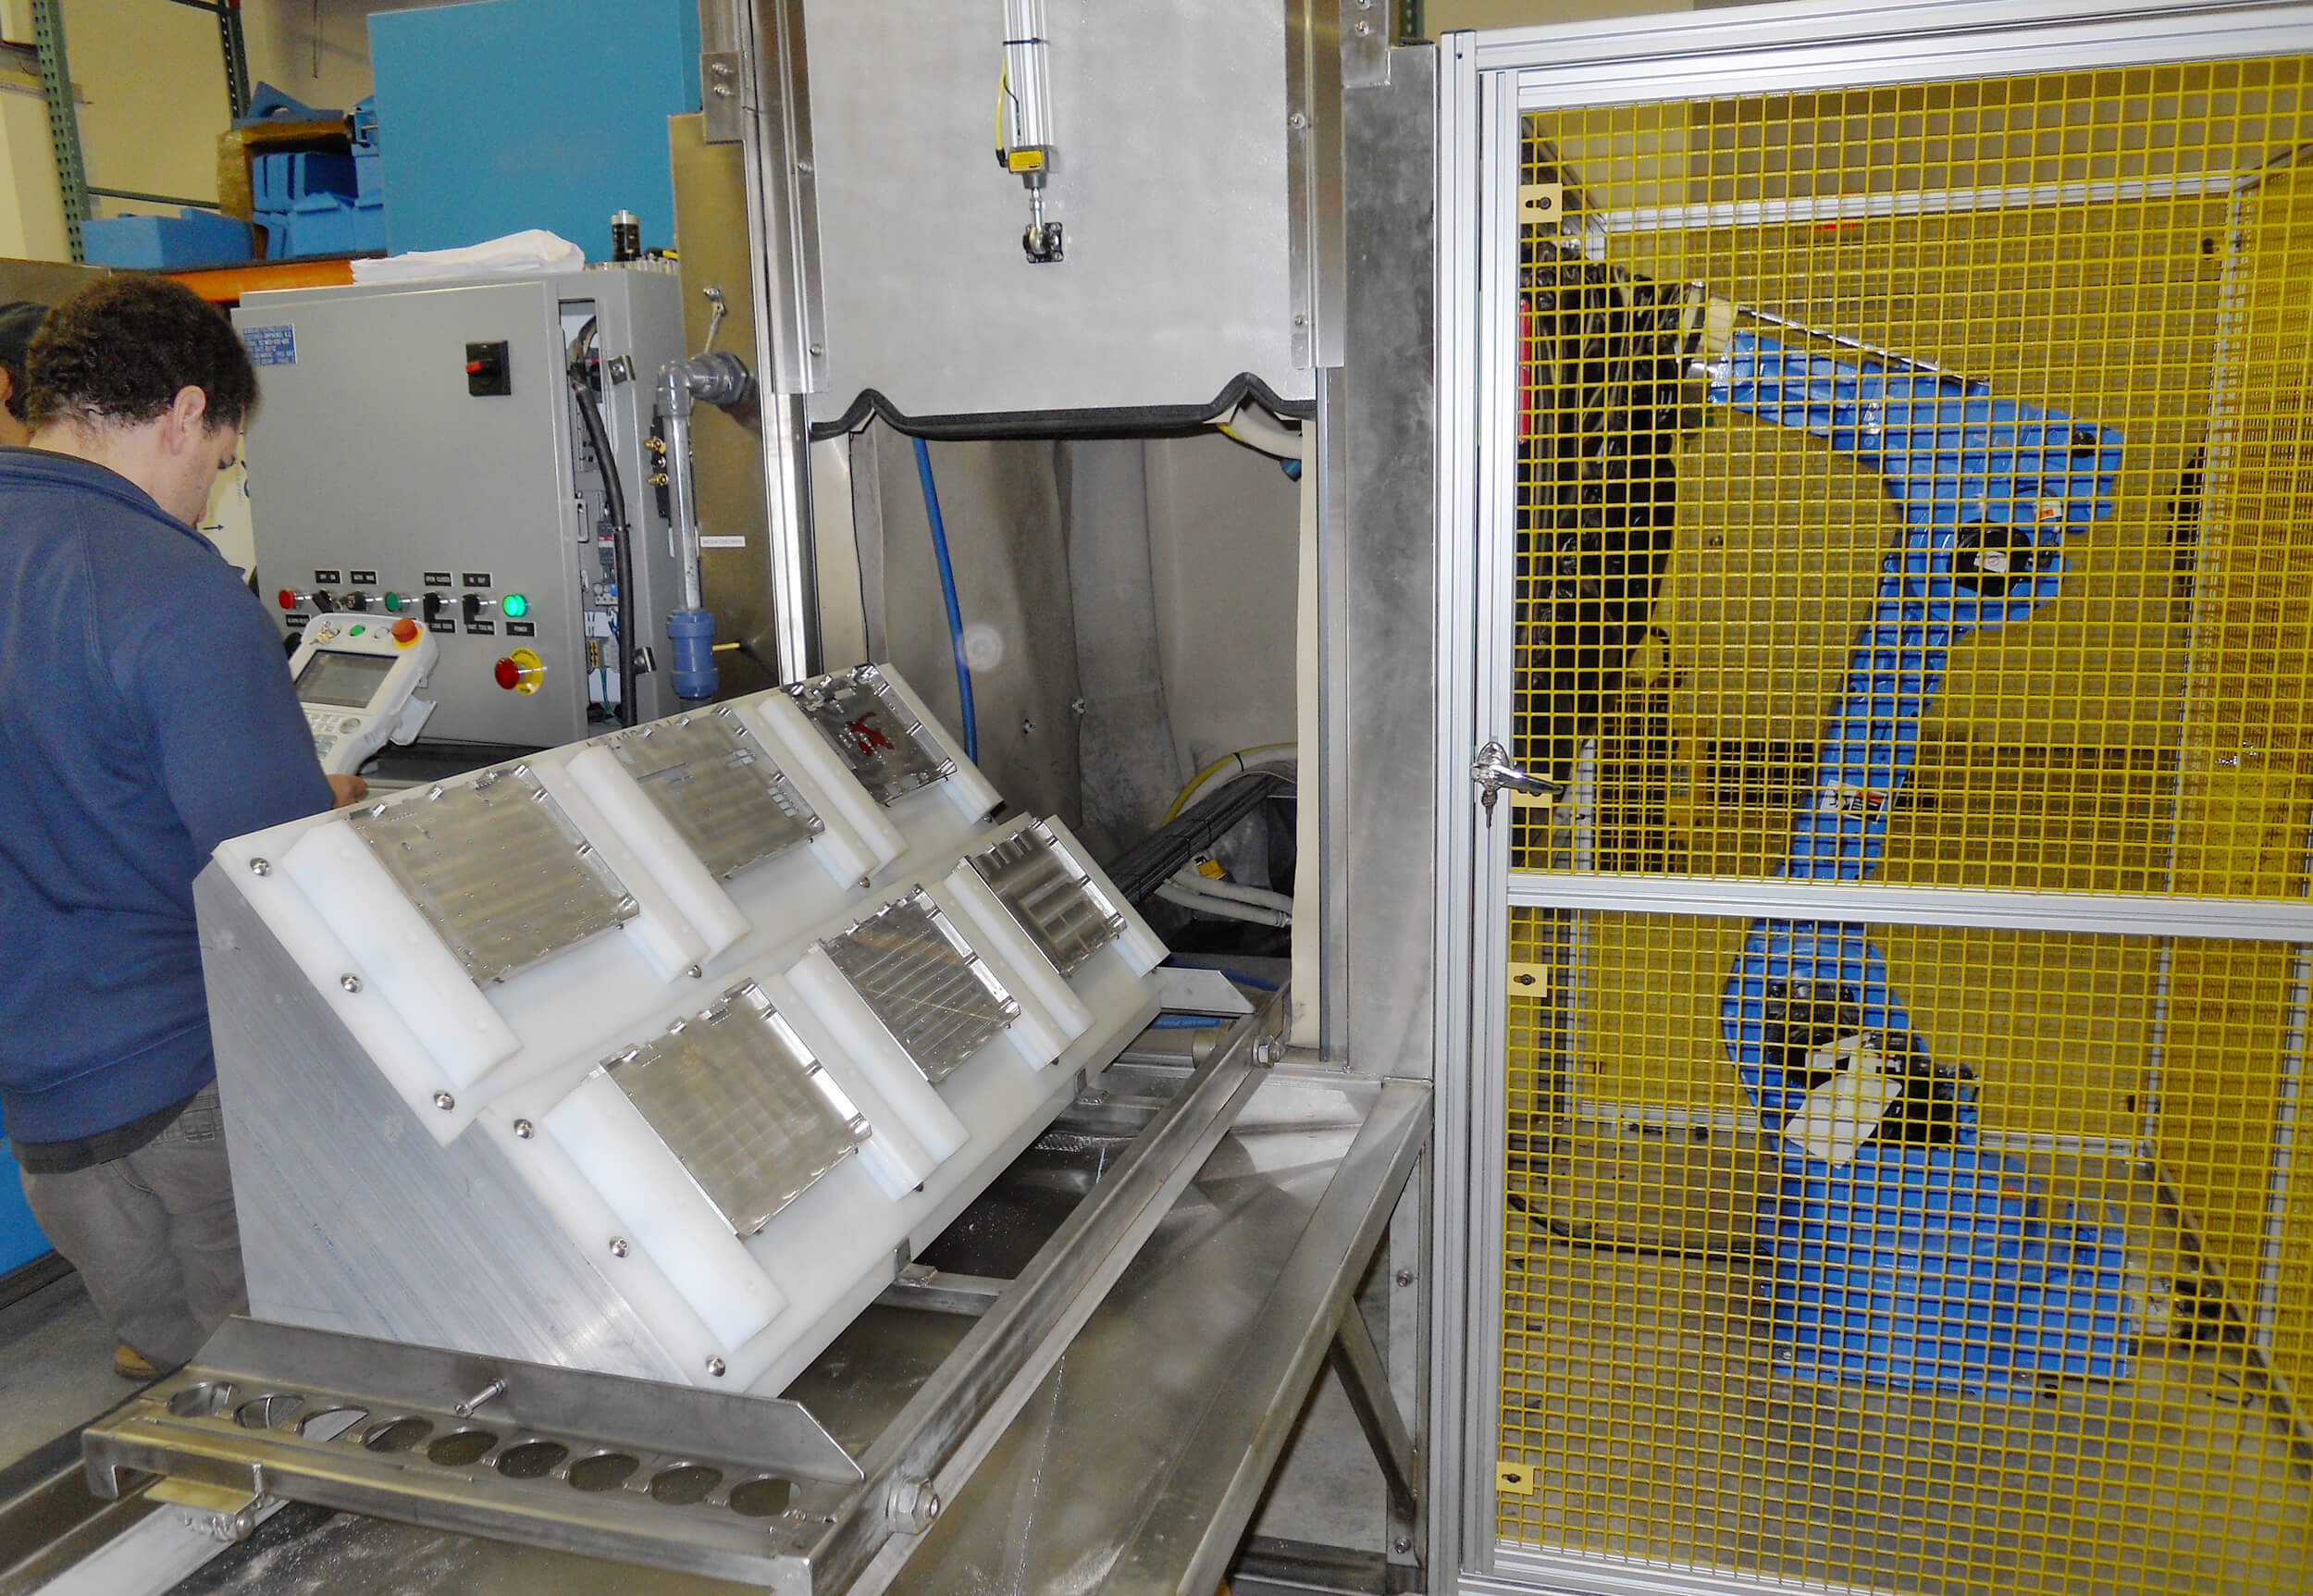 6 axis programmable batch system in use since 2012